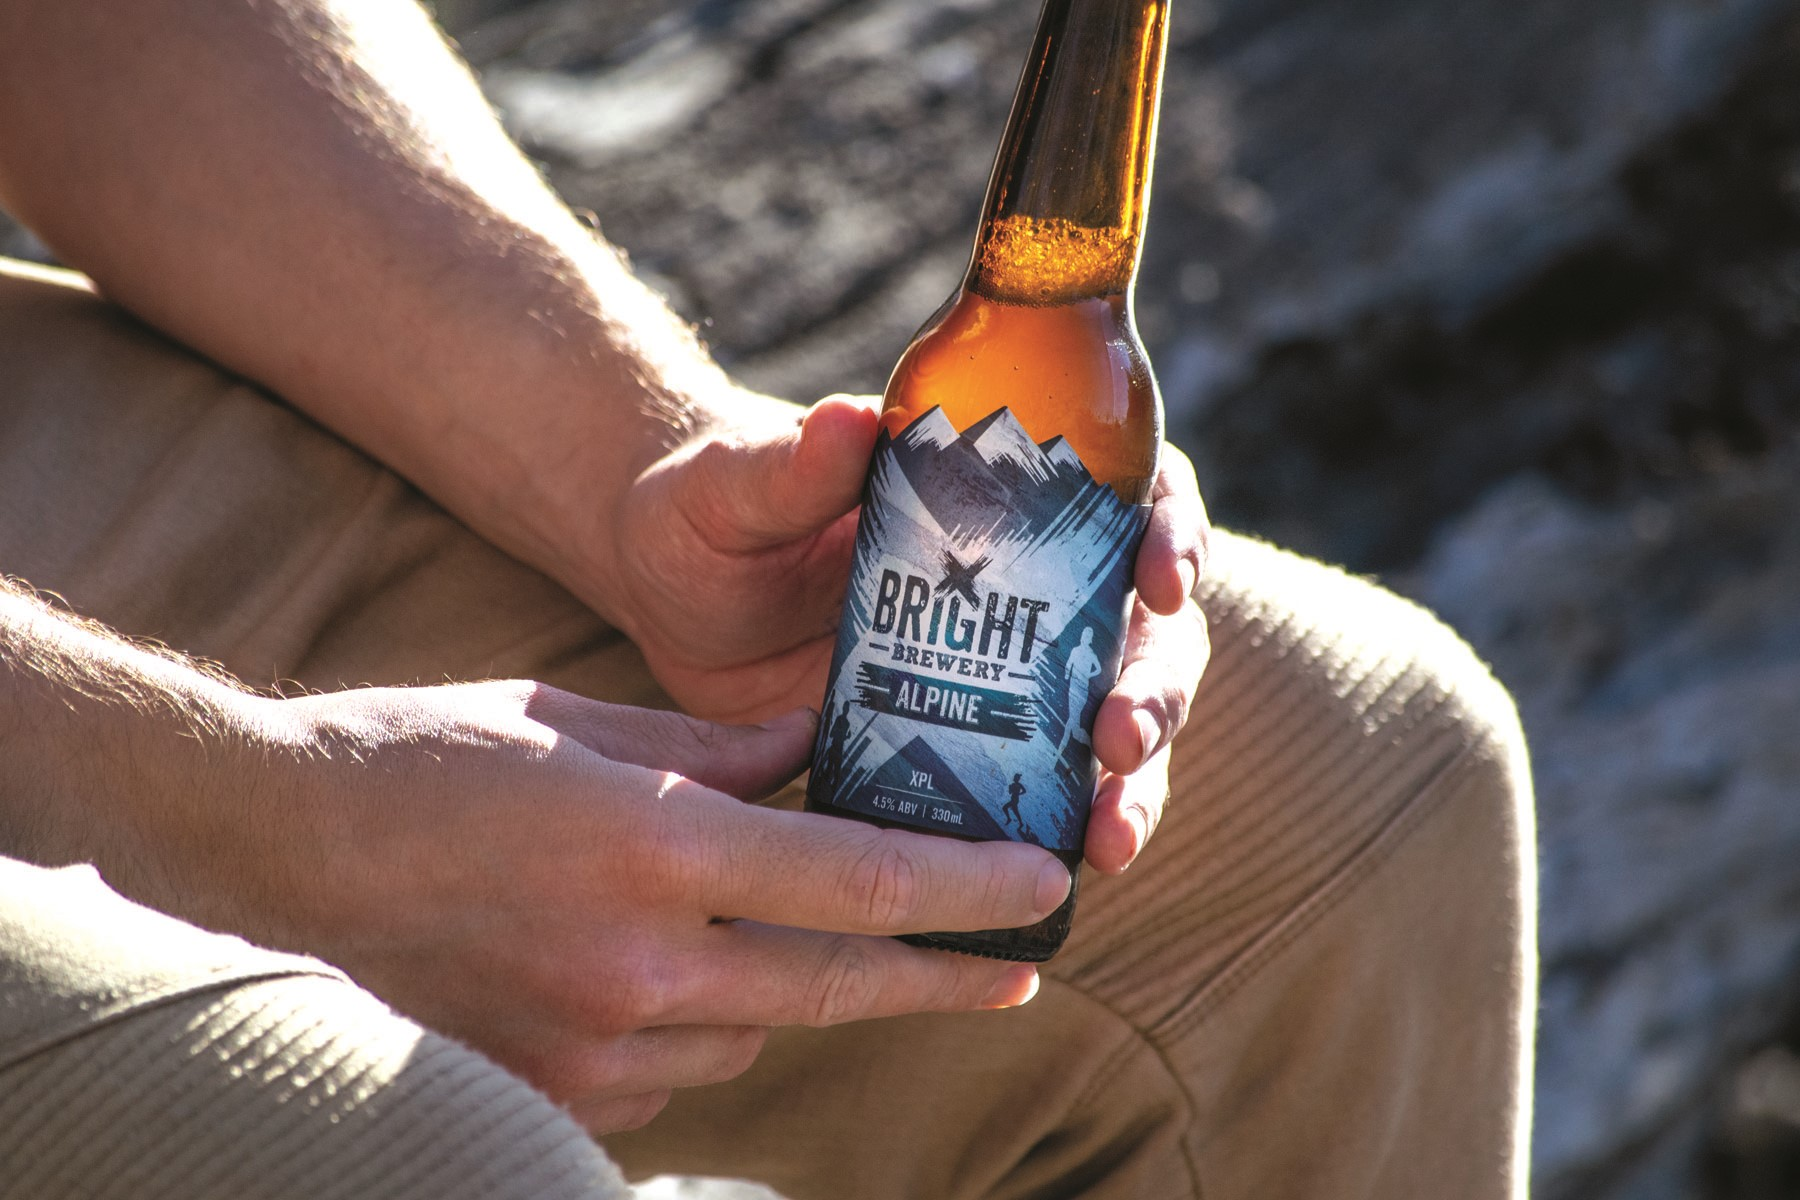 Bright Brewery Alpine XPL Review